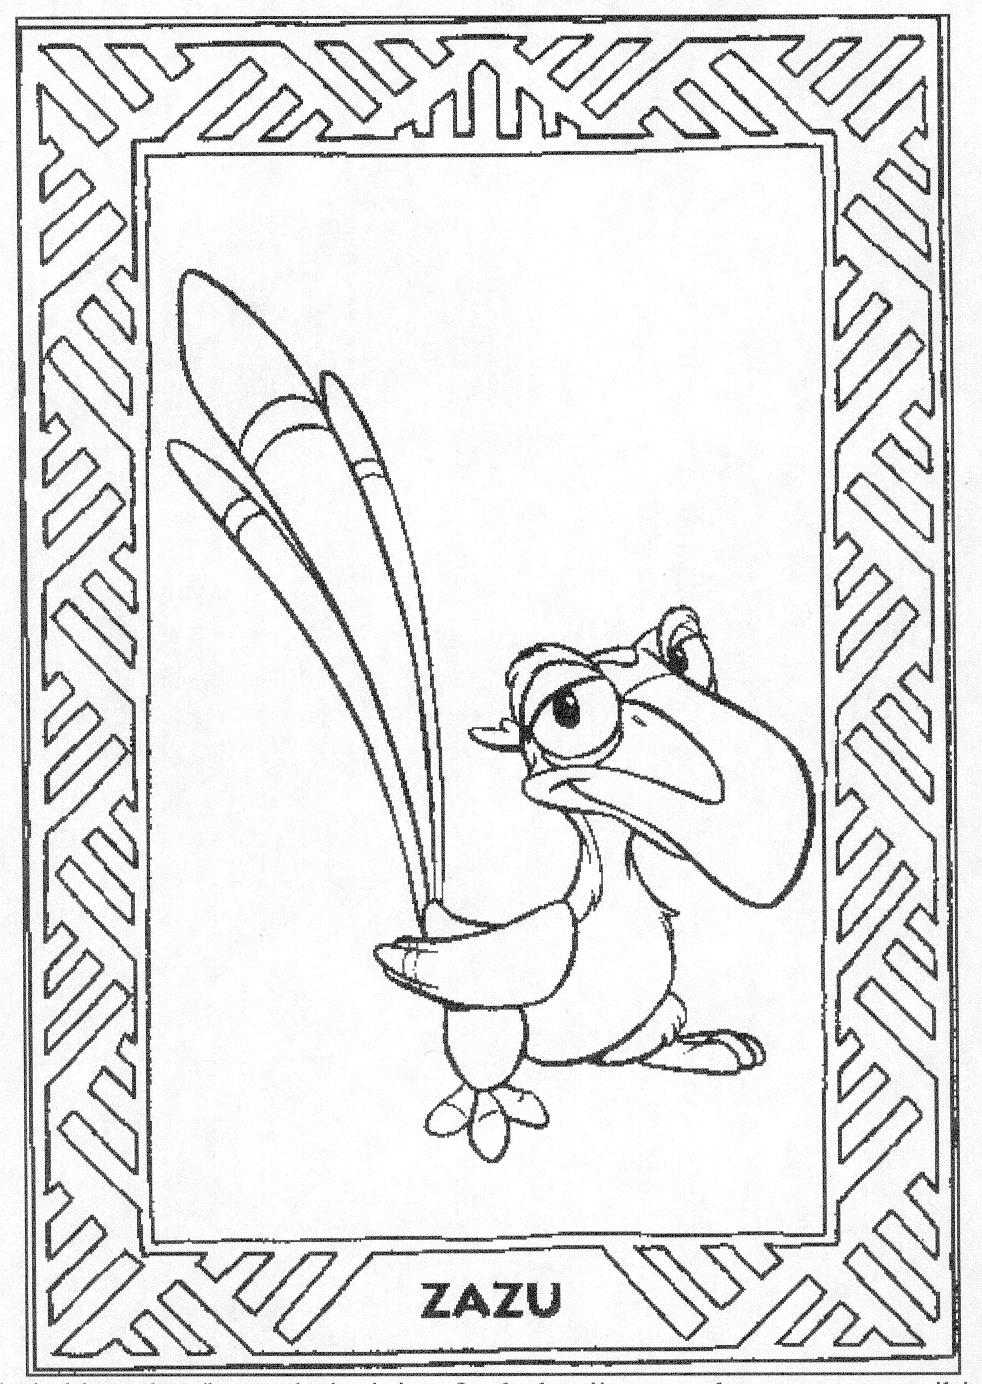 11 free printable the lion king coloring pages for kids all about -  The Lion King Coloring Pages